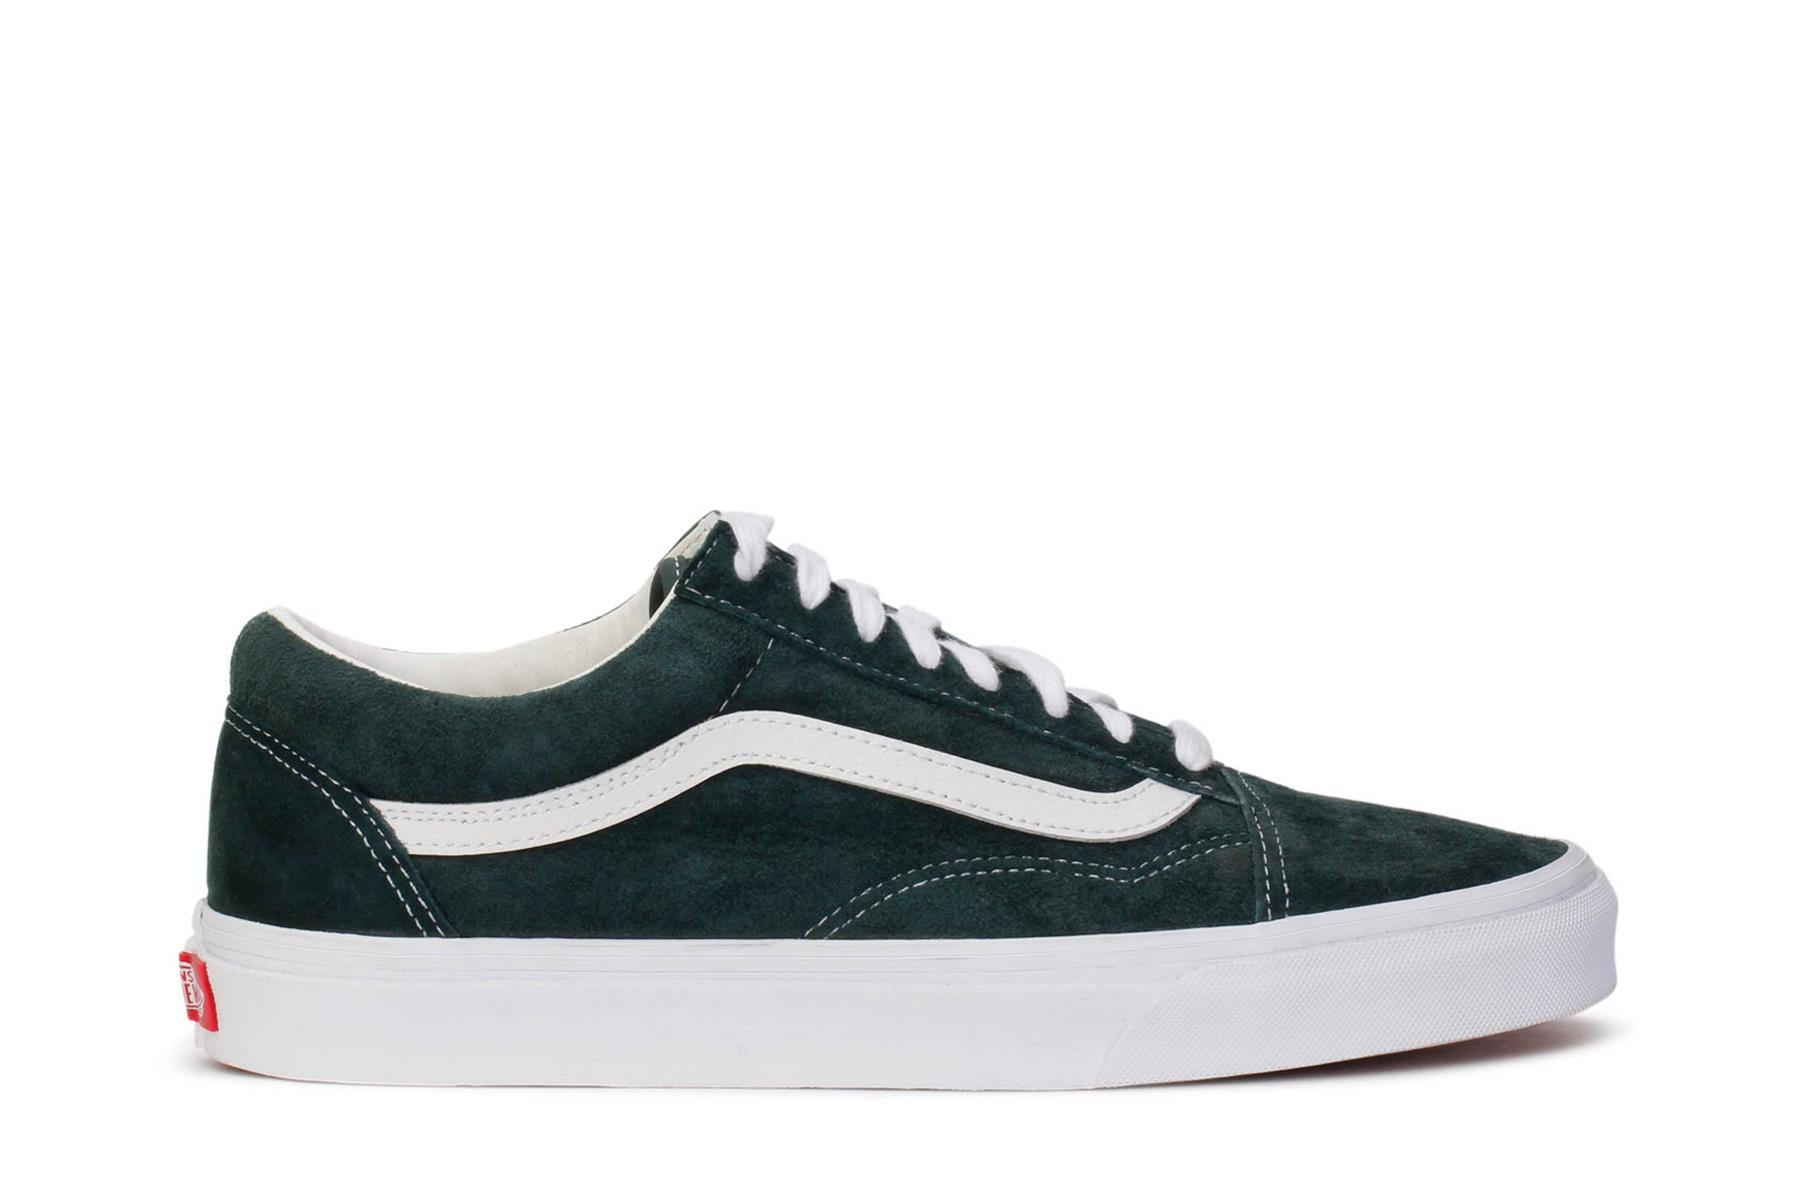 vans-mens-sneakers-old-skool-darkest-spurce-white-suede-vn0a38g1u5j-main